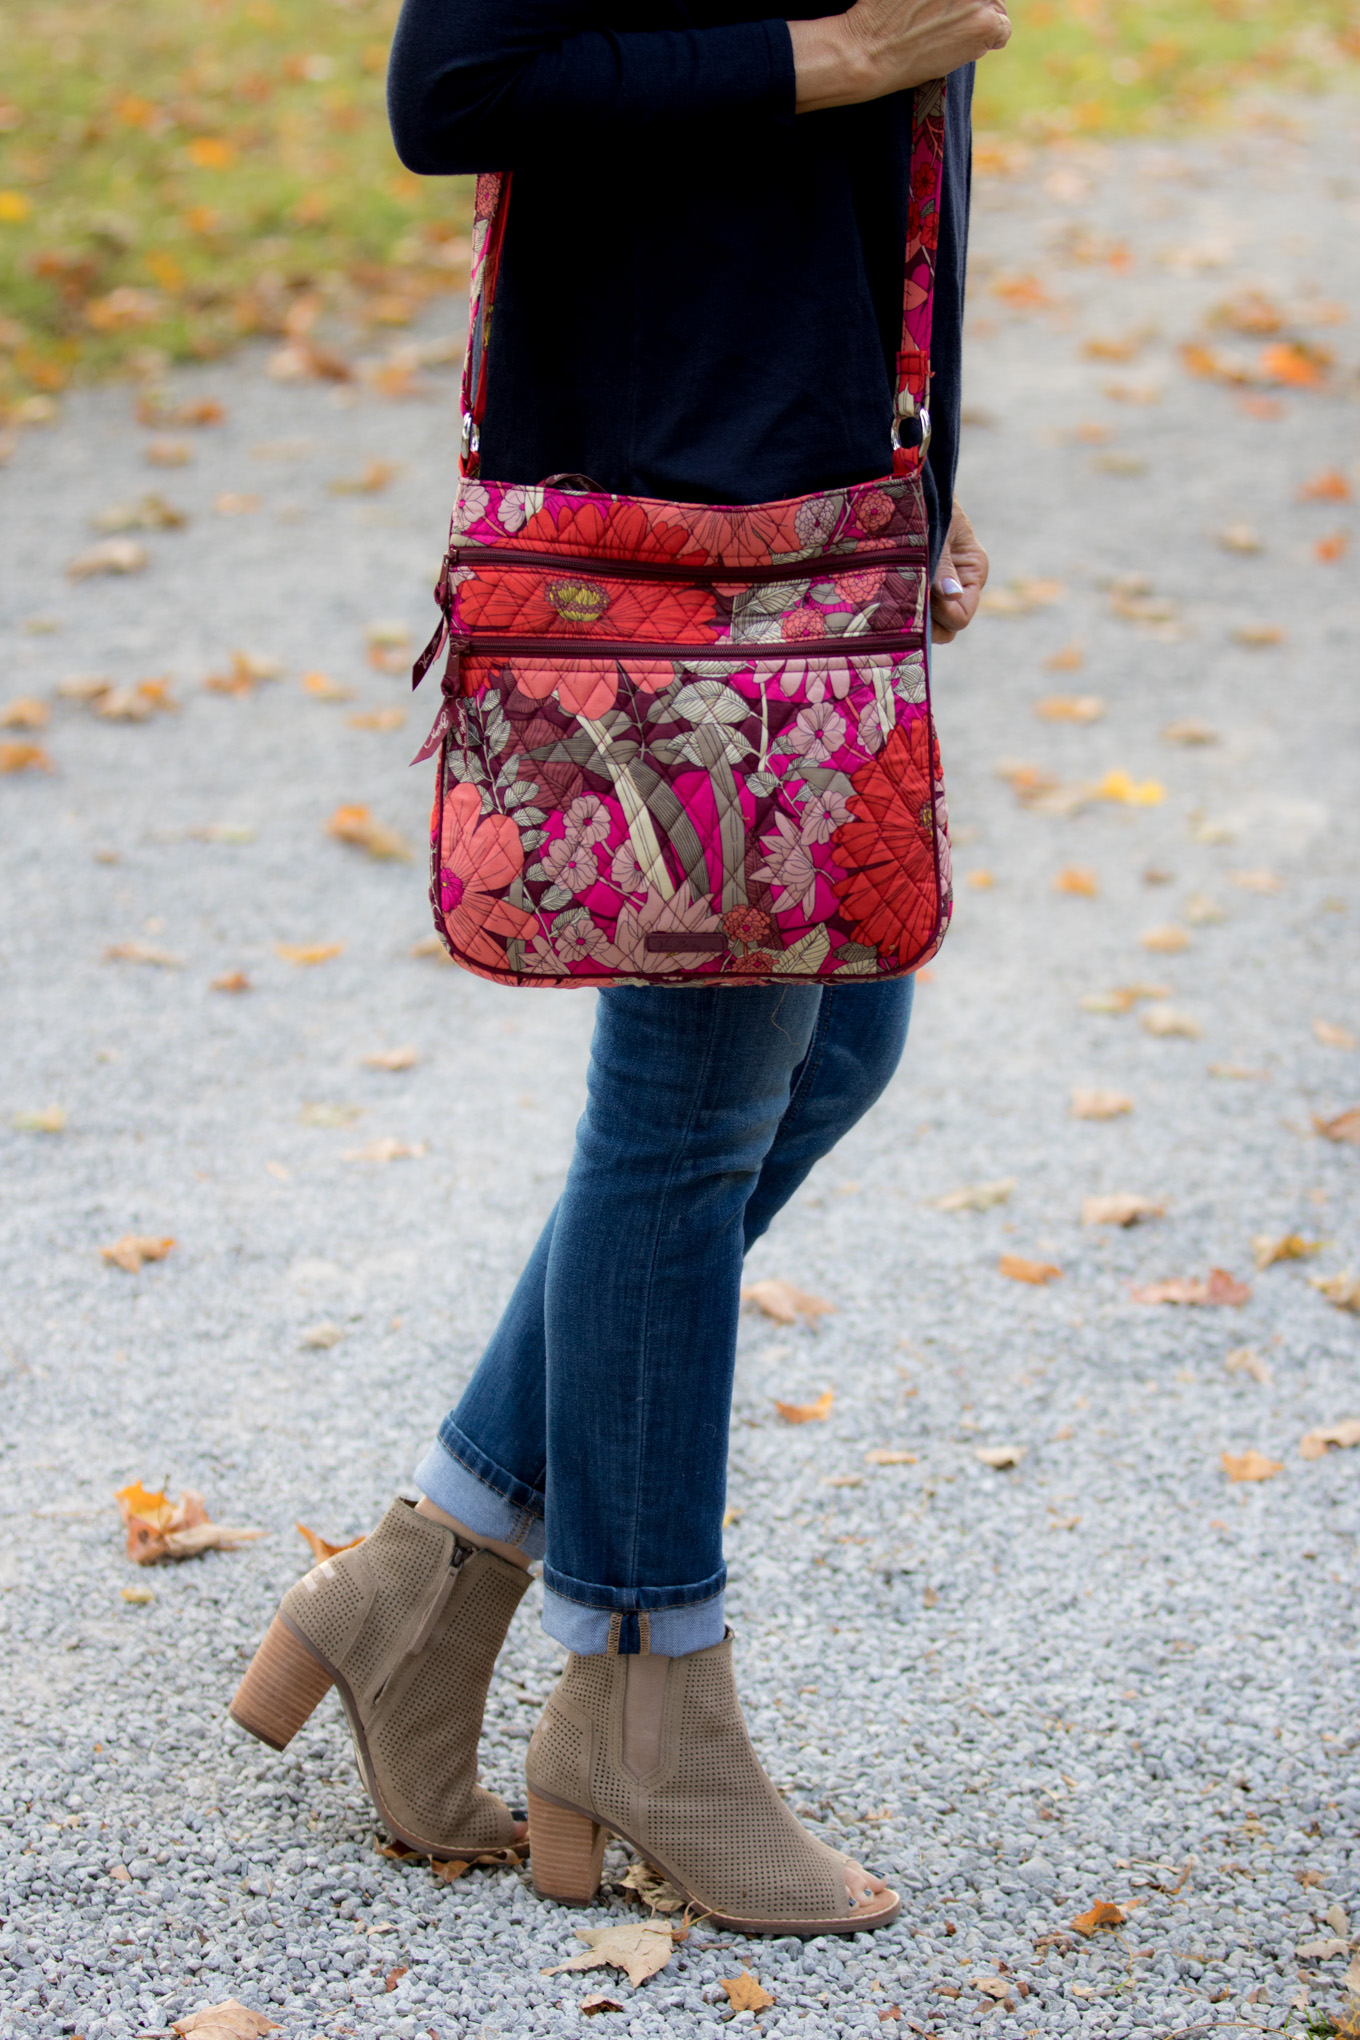 Fashion blogger, Cyndi Spivey, sharing a Vera Bradley crossbody bag.